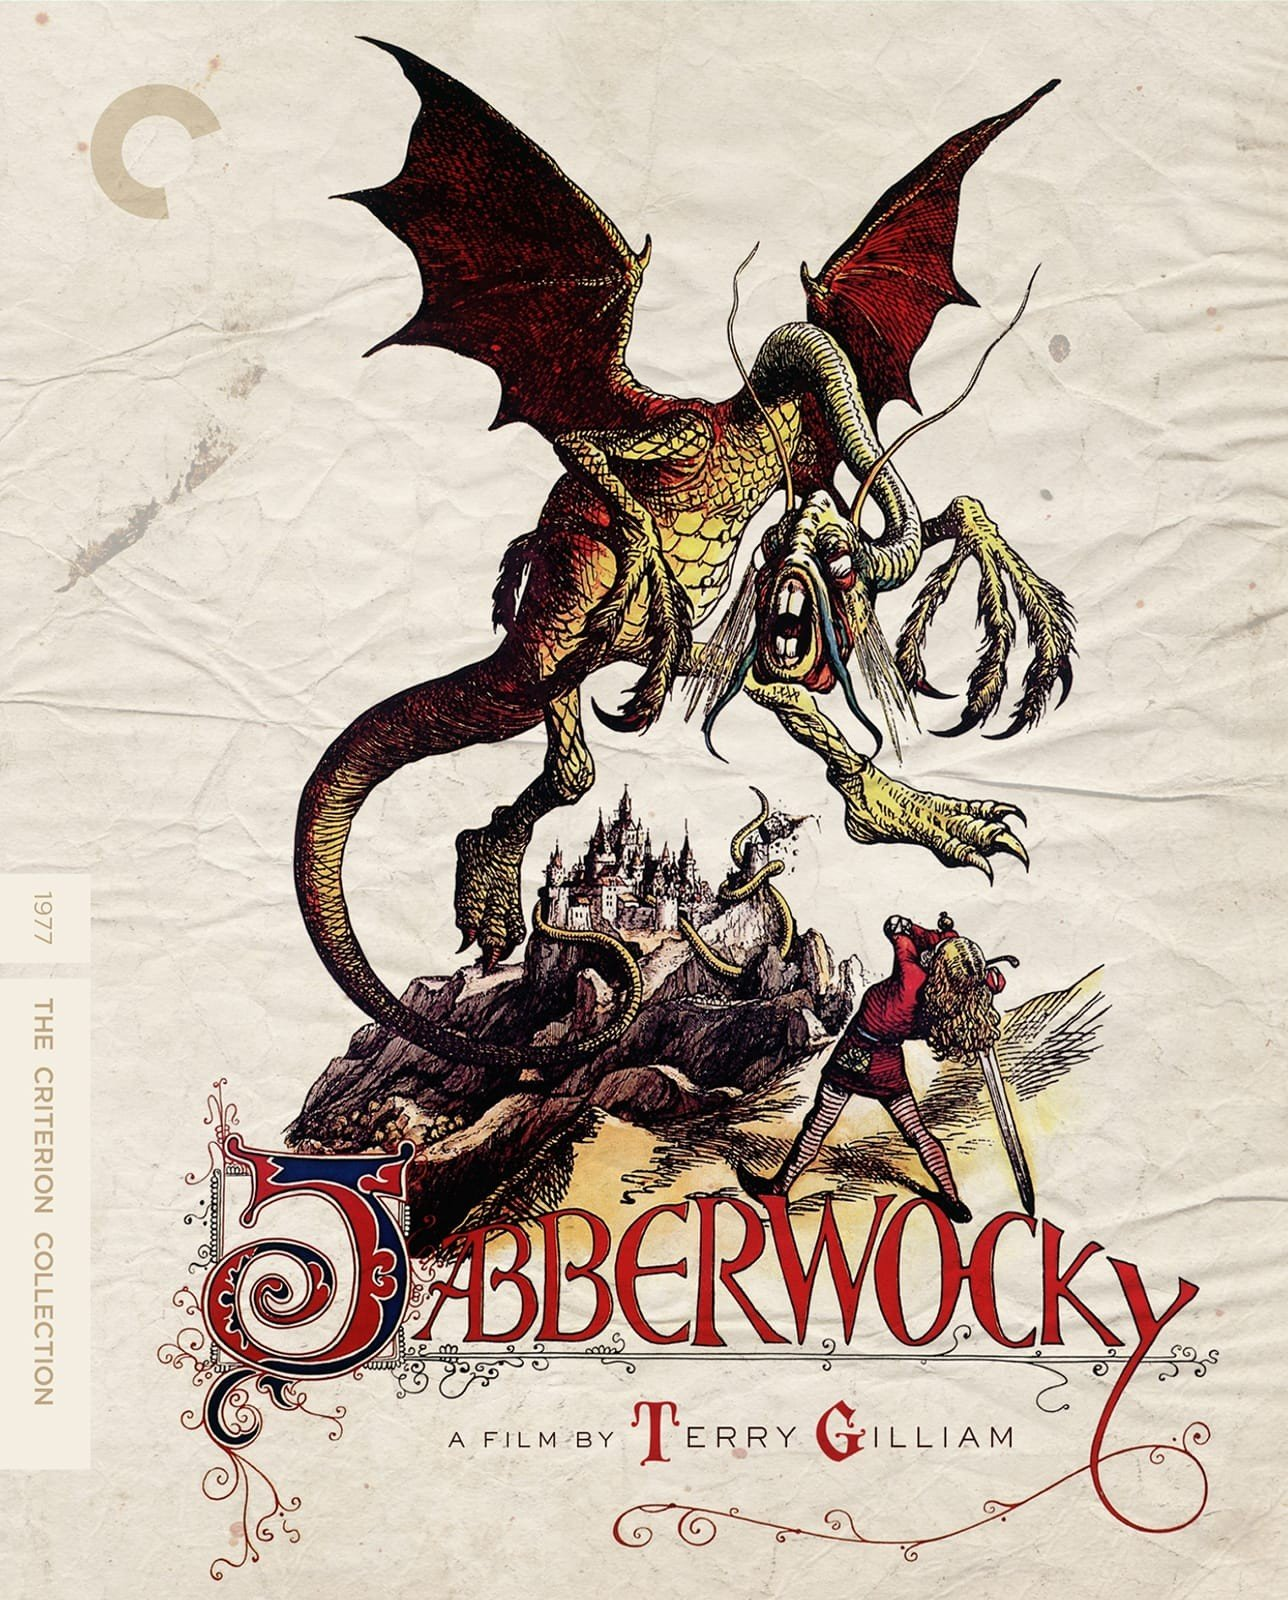 Blu-ray Review: Terry Gilliam's Jabberwocky on the Criterion